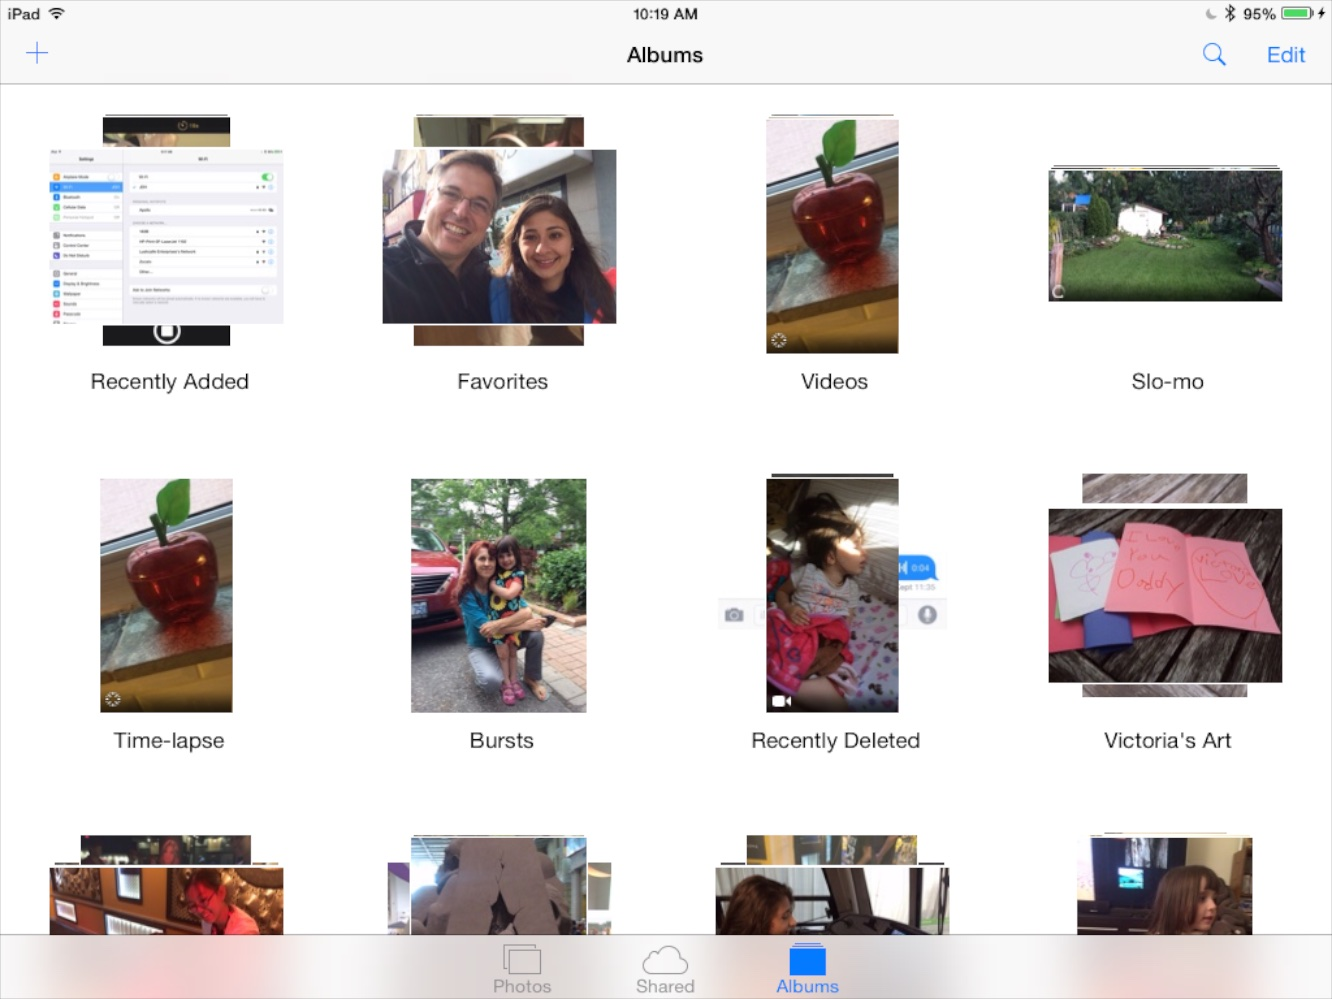 Instant Expert: Secrets & Features of iOS 8.0